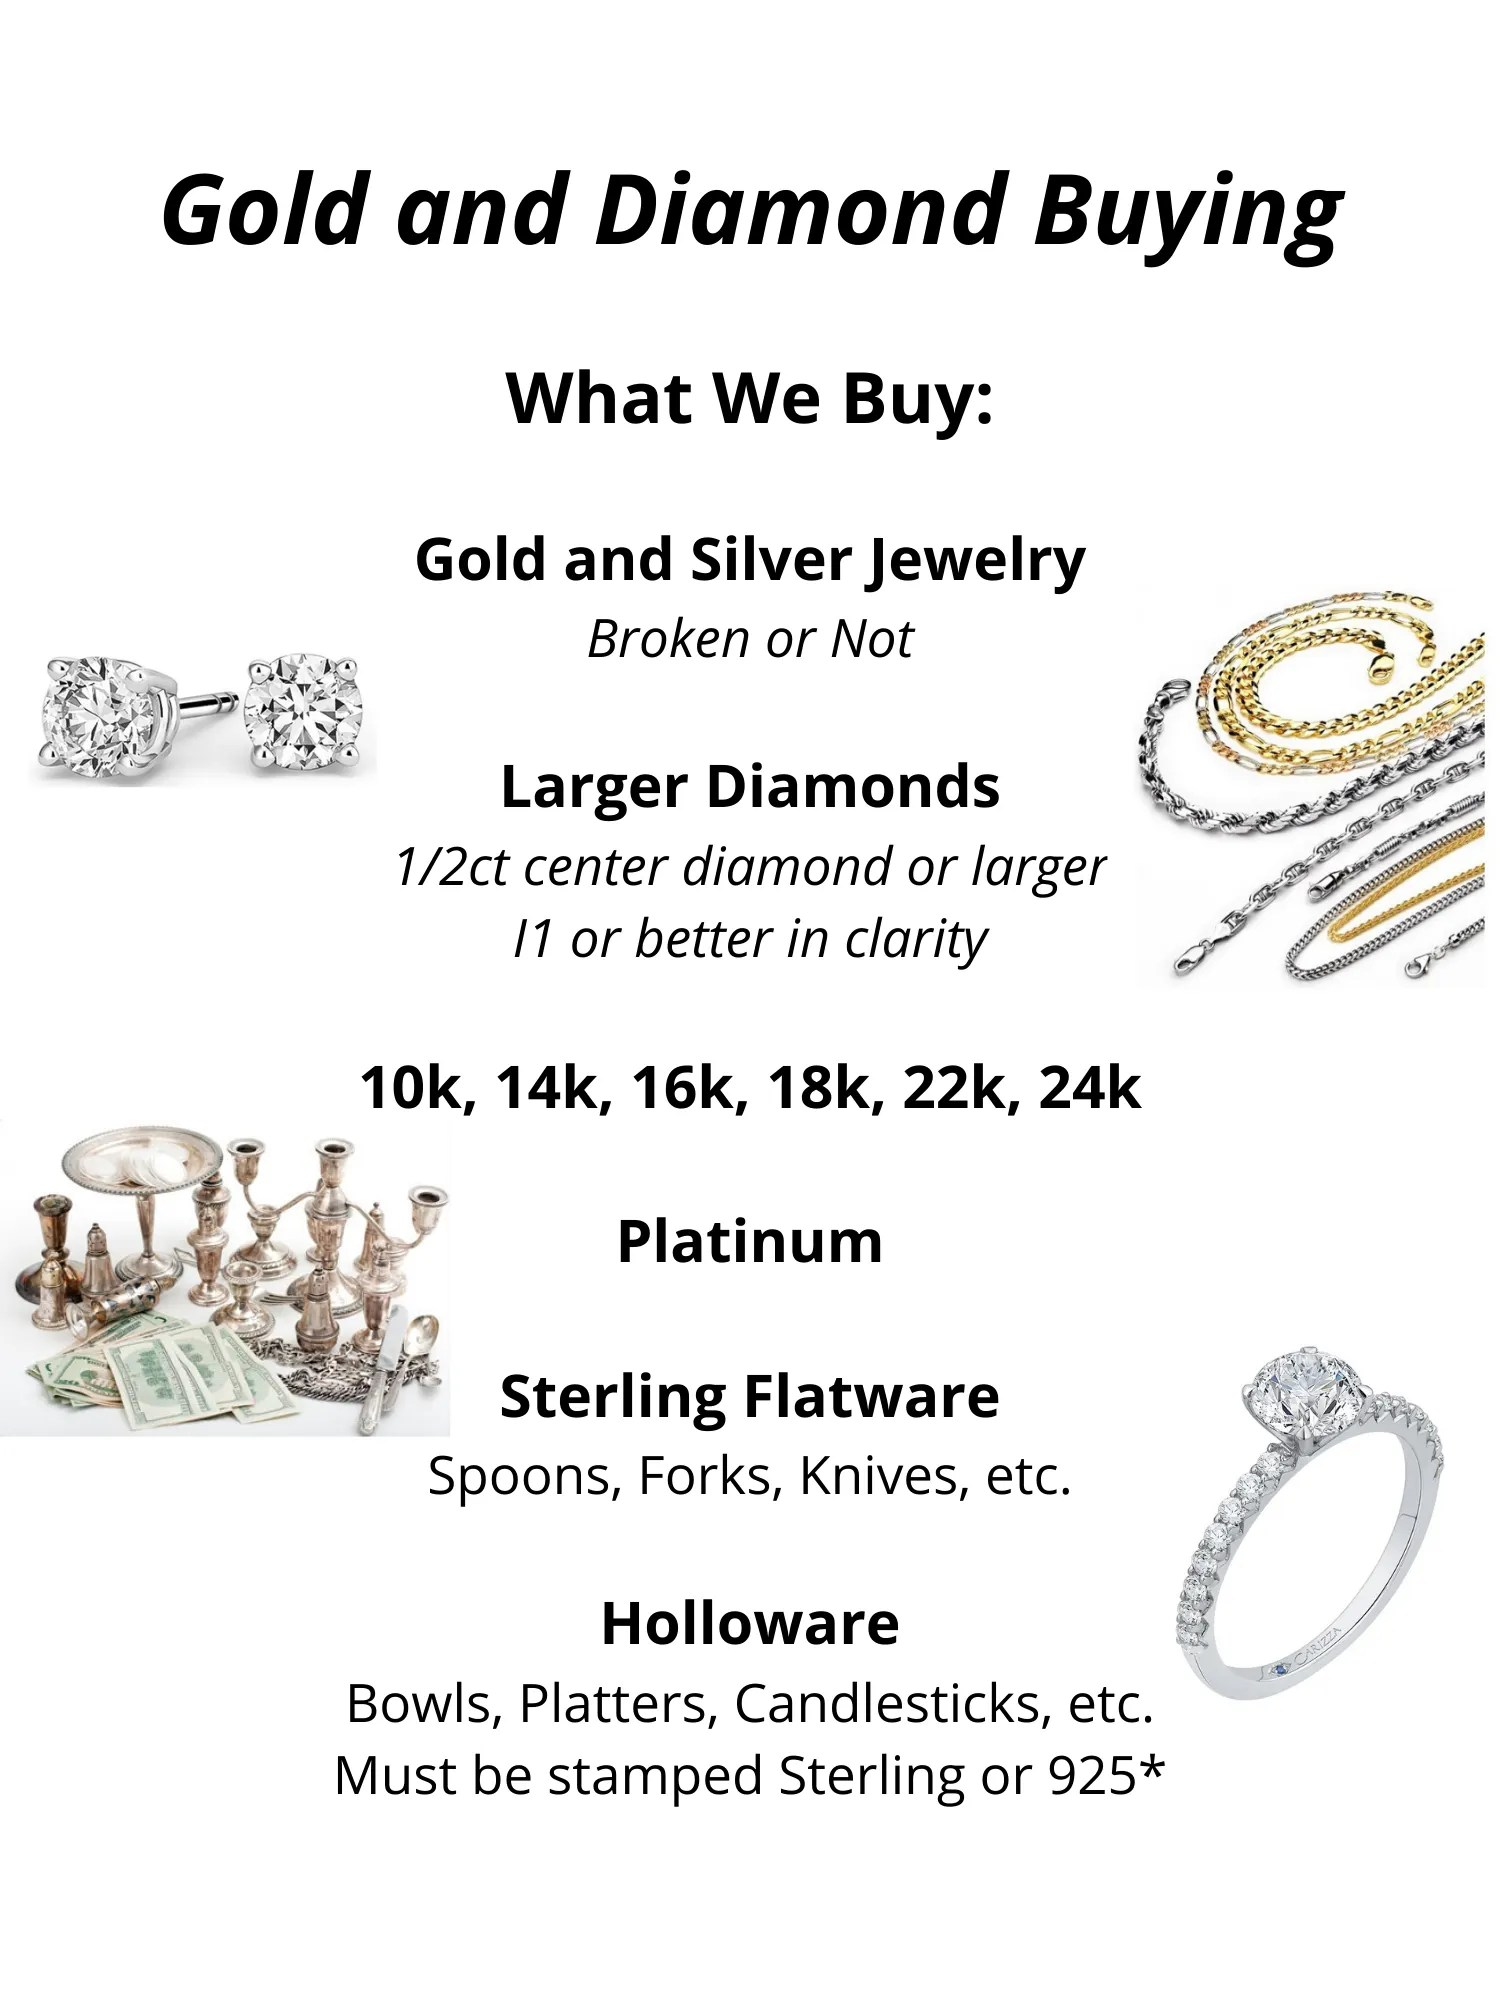 How I Can Find Silver Buyers Near Me?